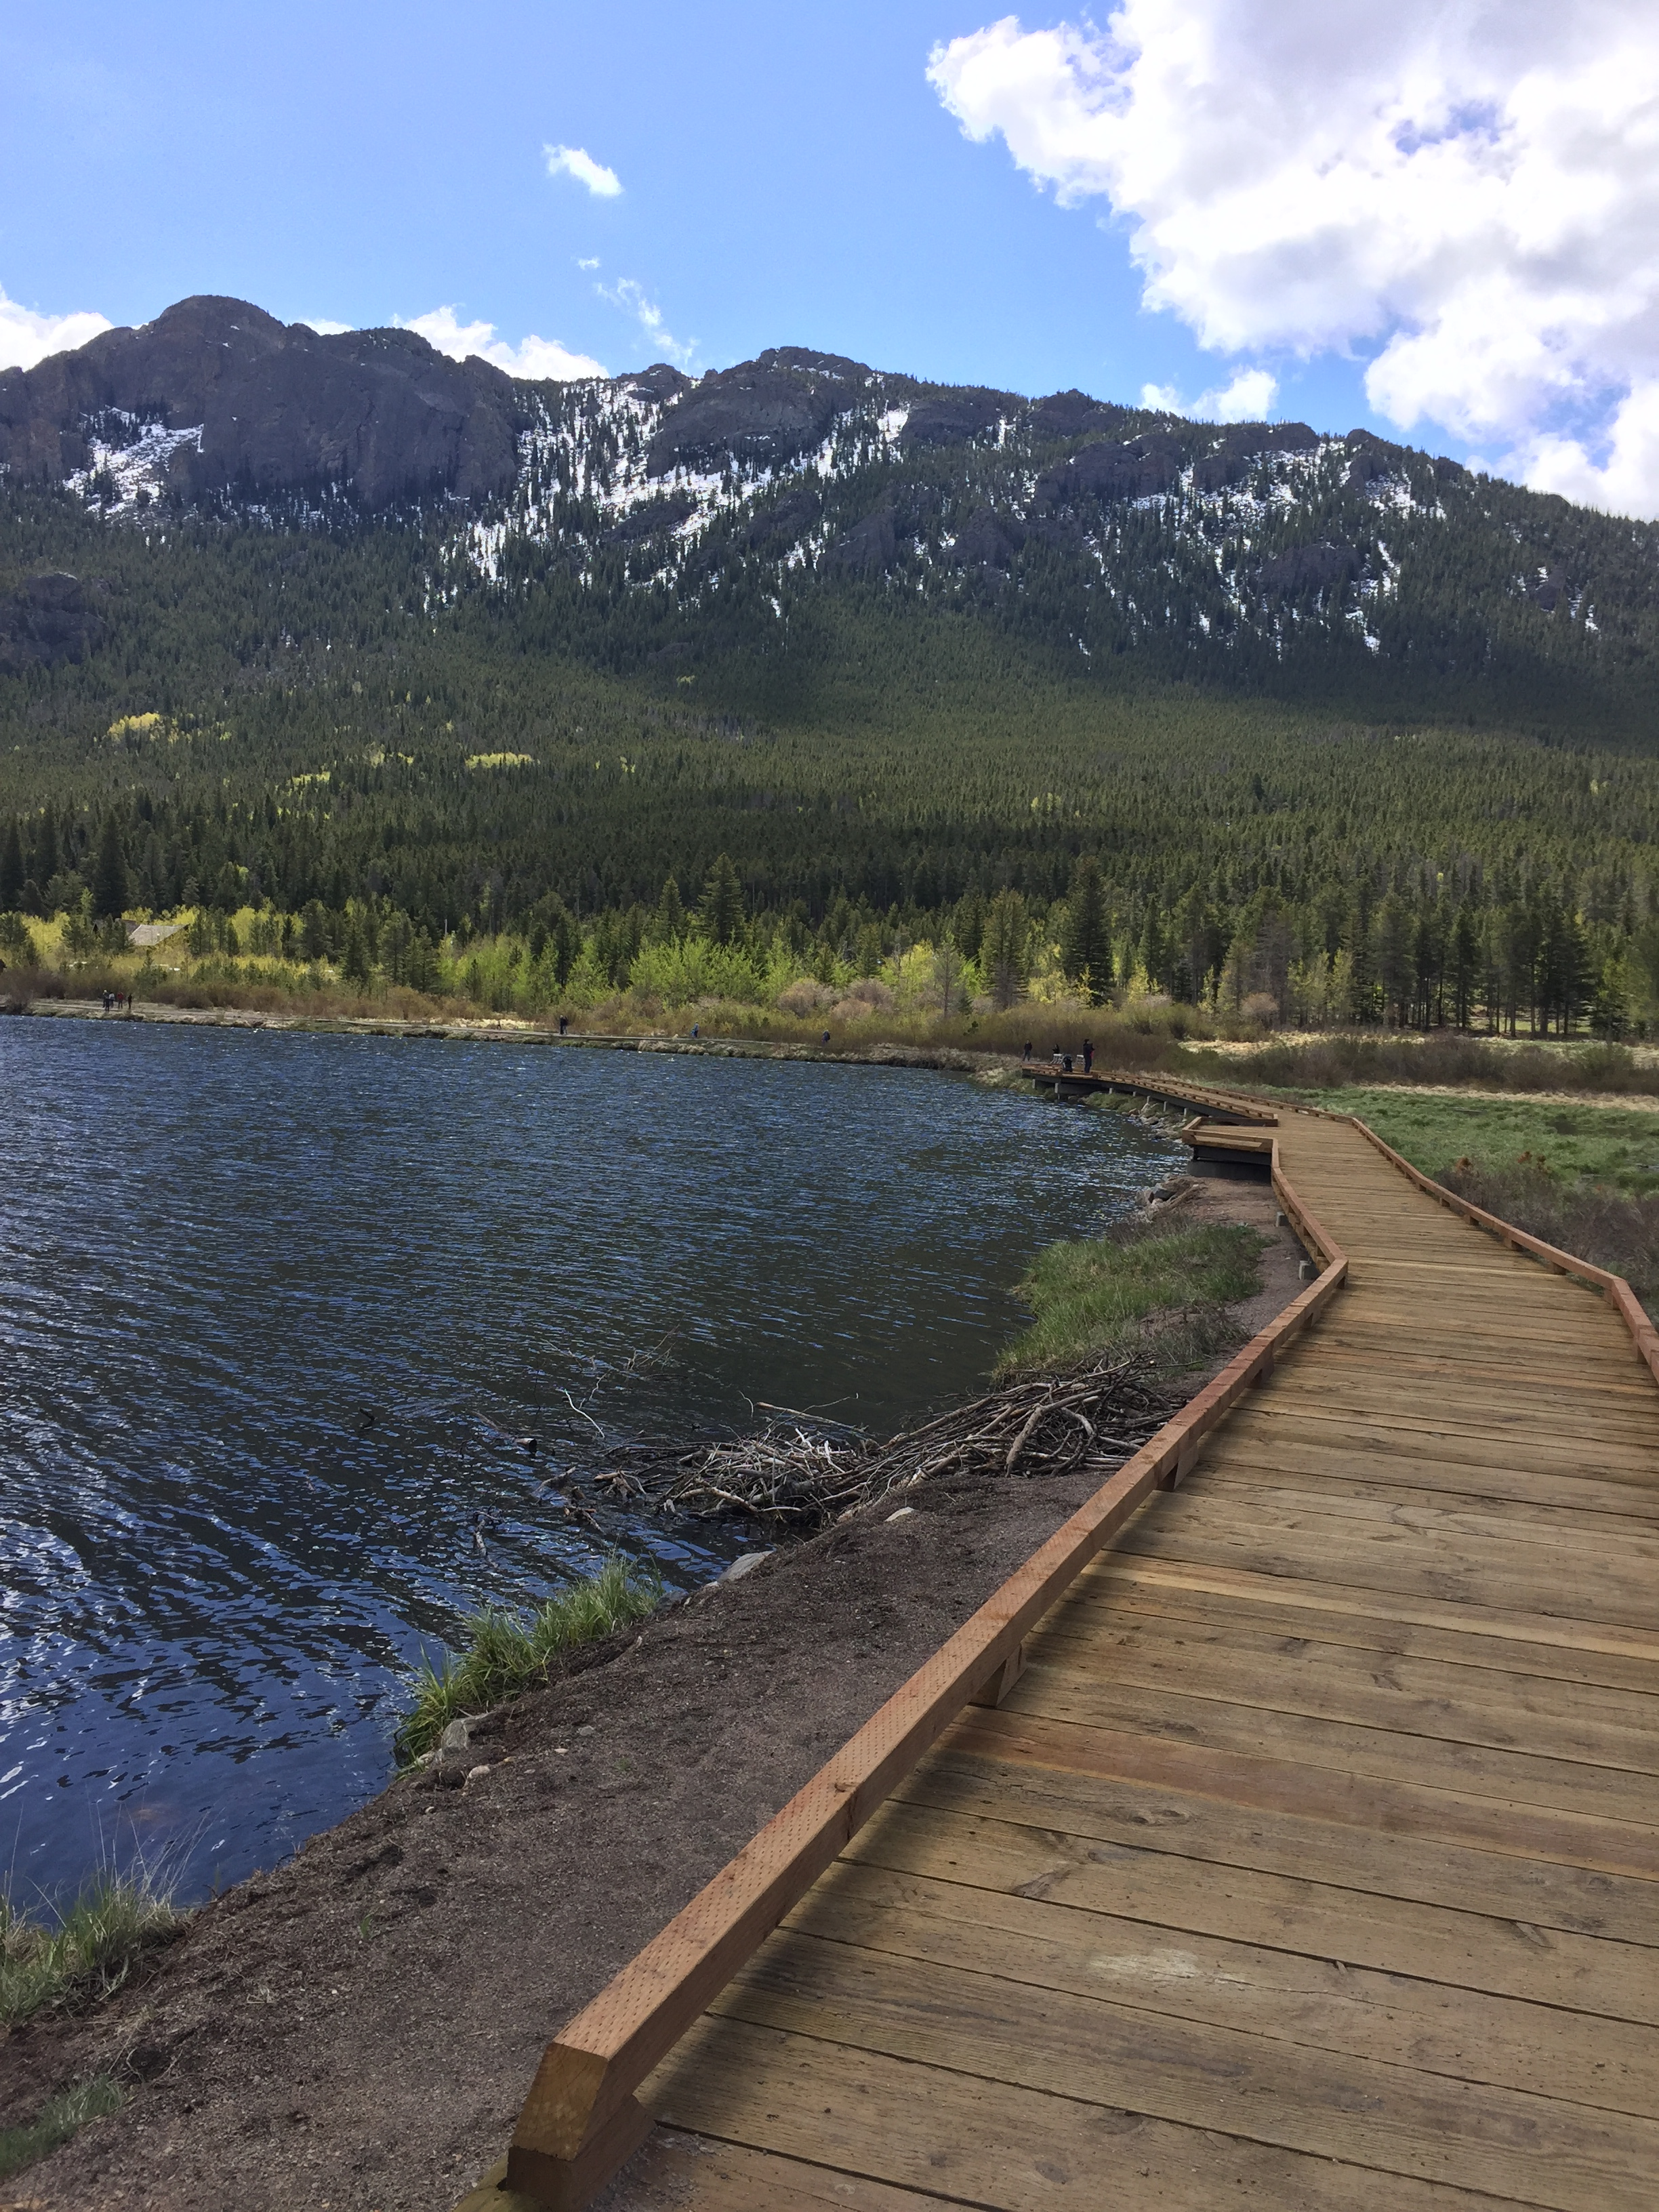 Lily Lake is a favorite family destination in RMNP